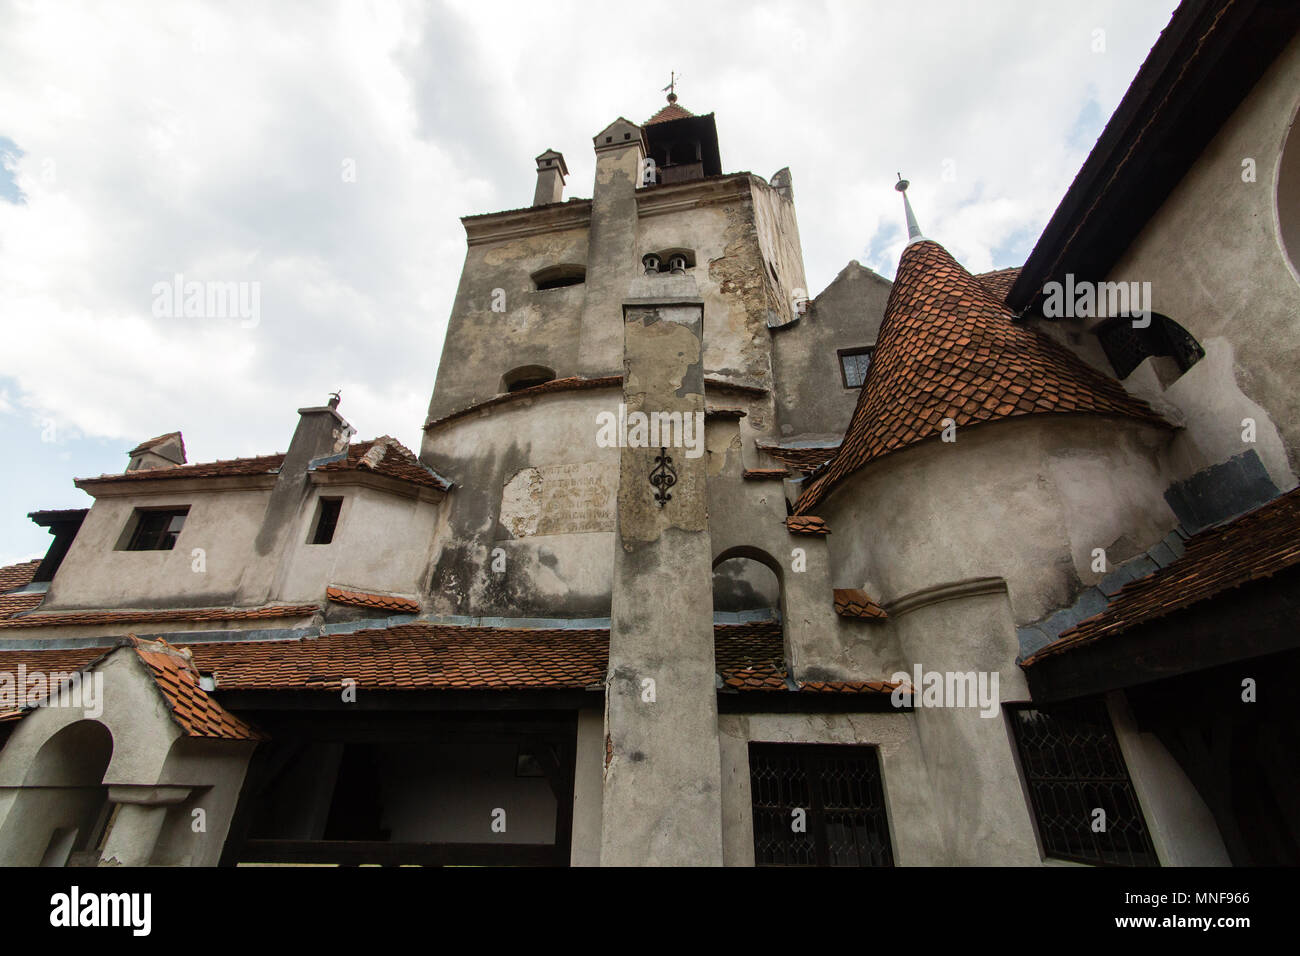 Bran, Romania - JULY 20 2017: The medieval Castle of Bran. The castle guarded in the past the border between Transylvania an Wallachia. It is also kno - Stock Image